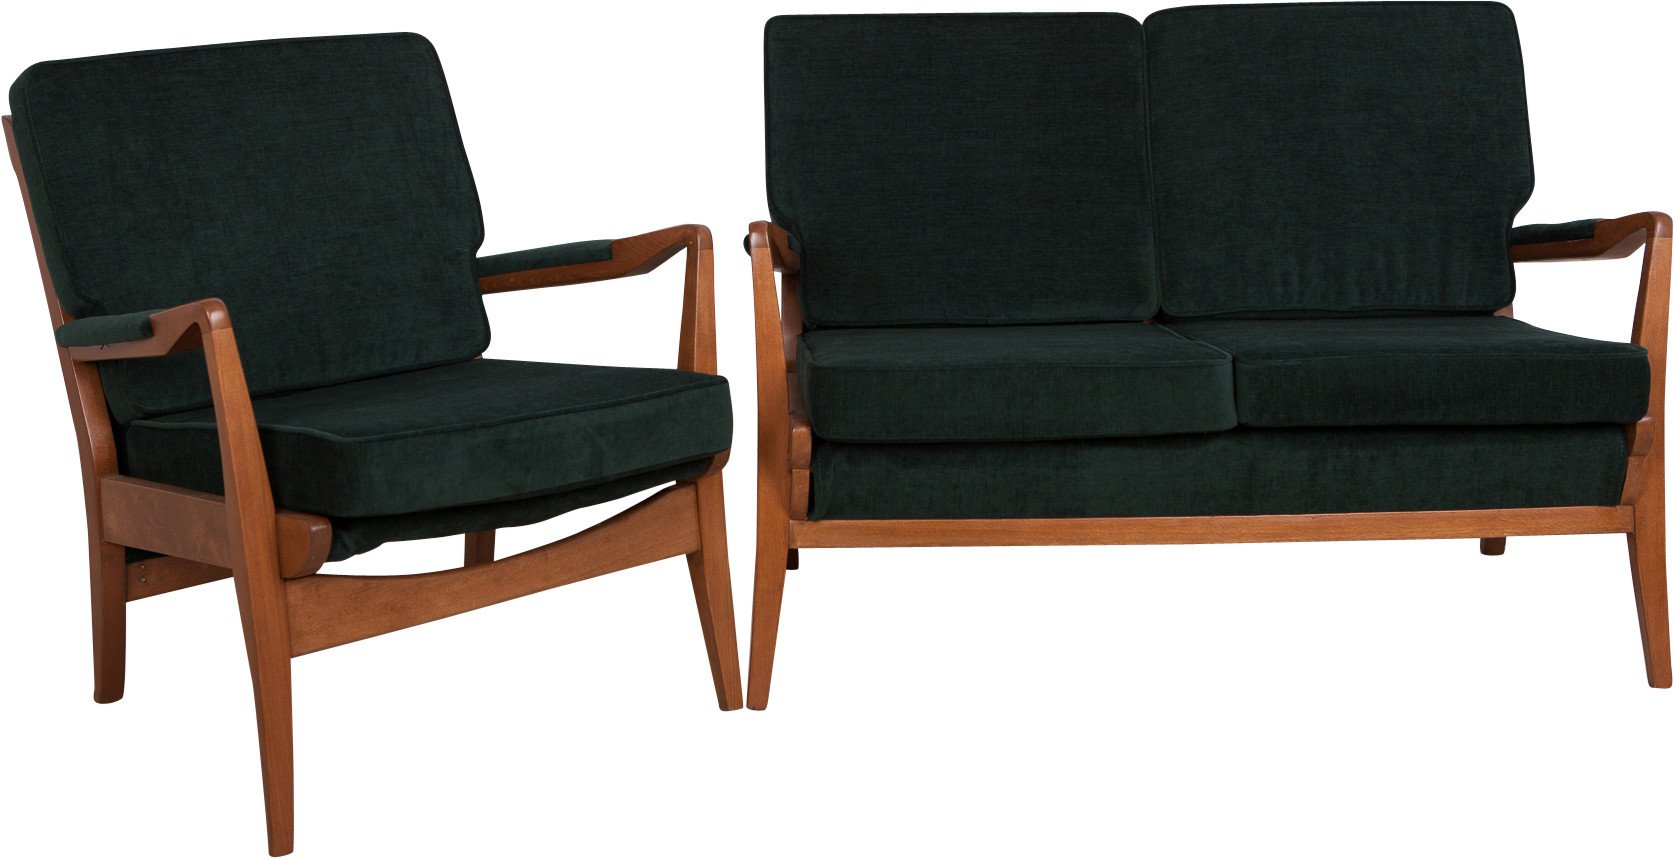 Set of Sofa and Armchair, Cintique, Great Britain, 1960s